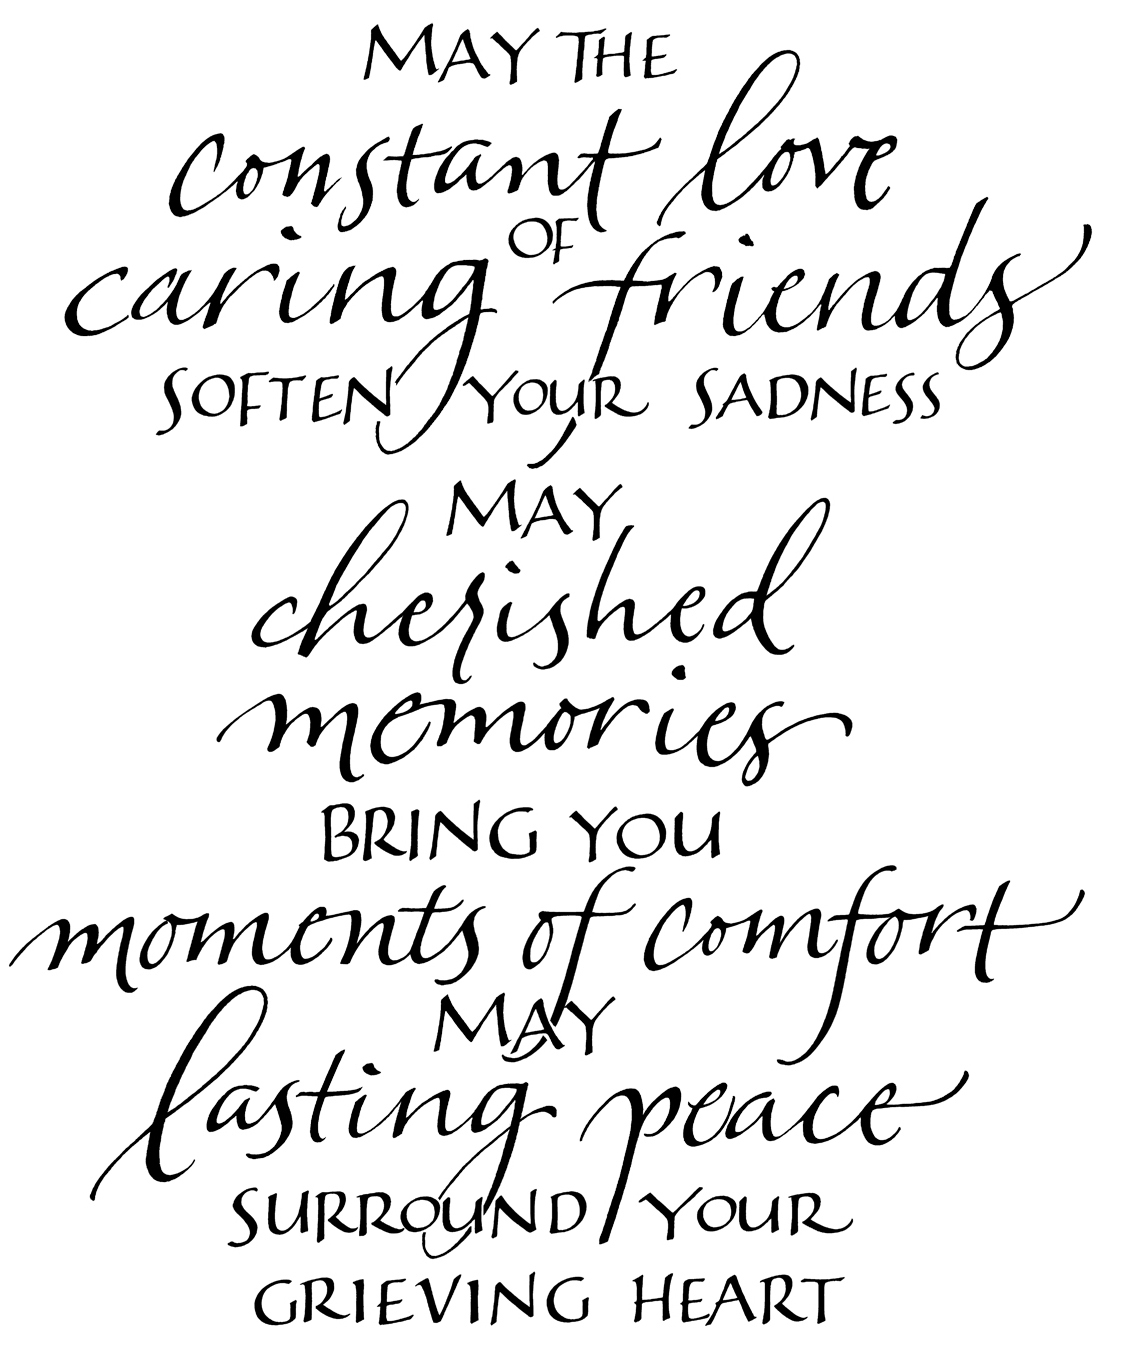 May the constant love of caring friends soften your sadness. May cherished memories bring you moments of comfort. May lasting peace surround....